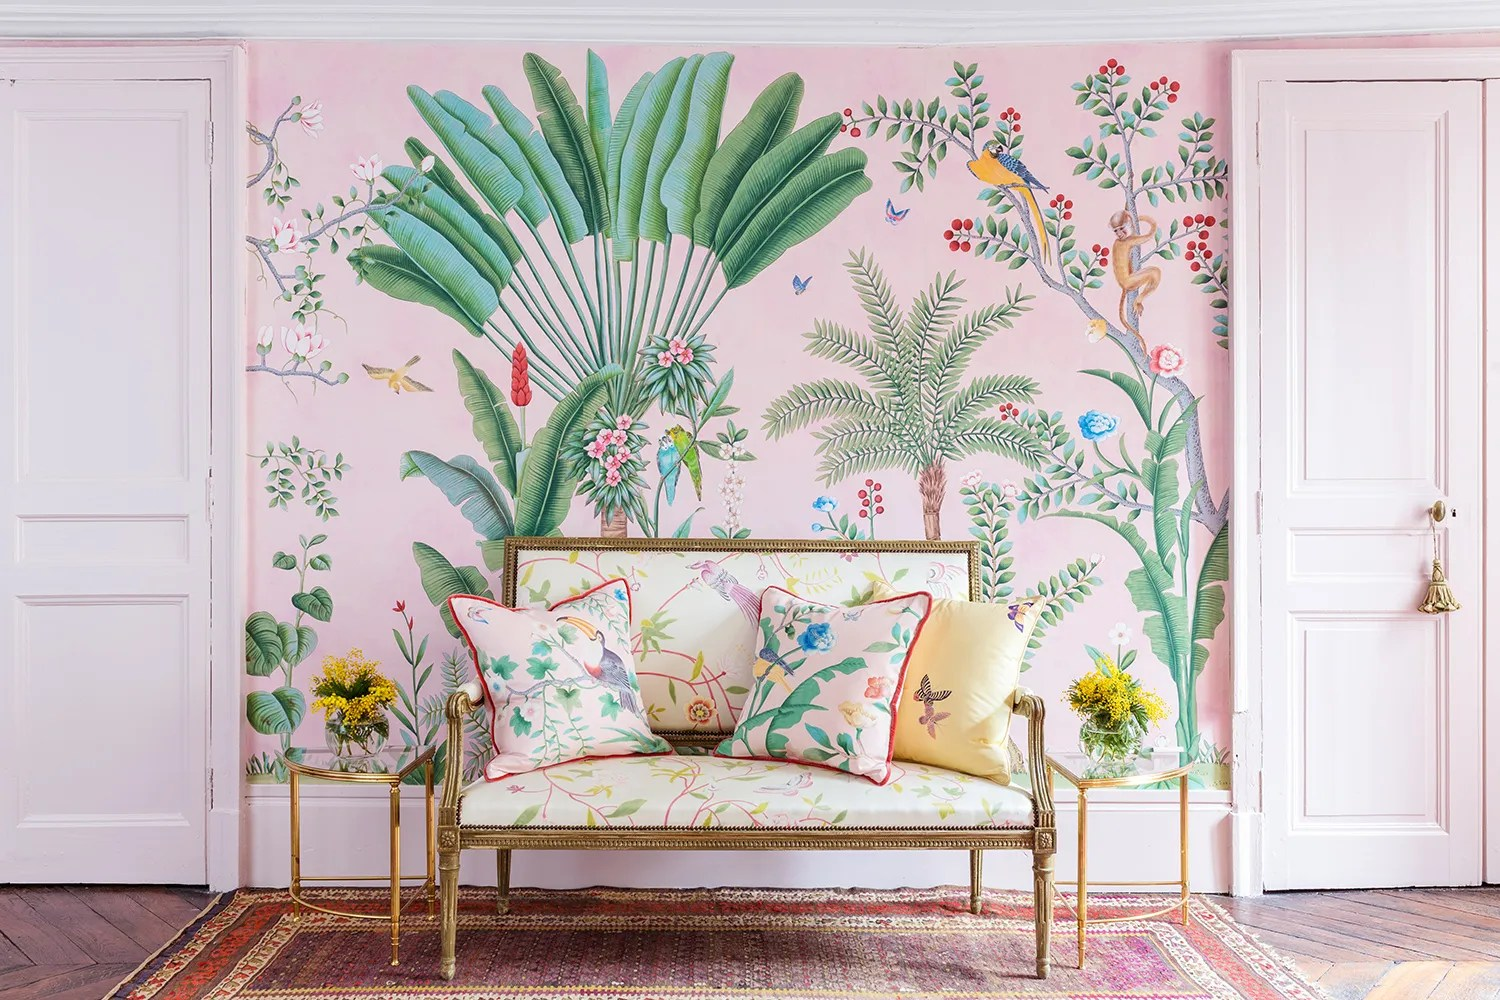 Lilly Pulitzer Fall Wallpaper This Wallpaper Collection May Be The Most Beautiful Thing